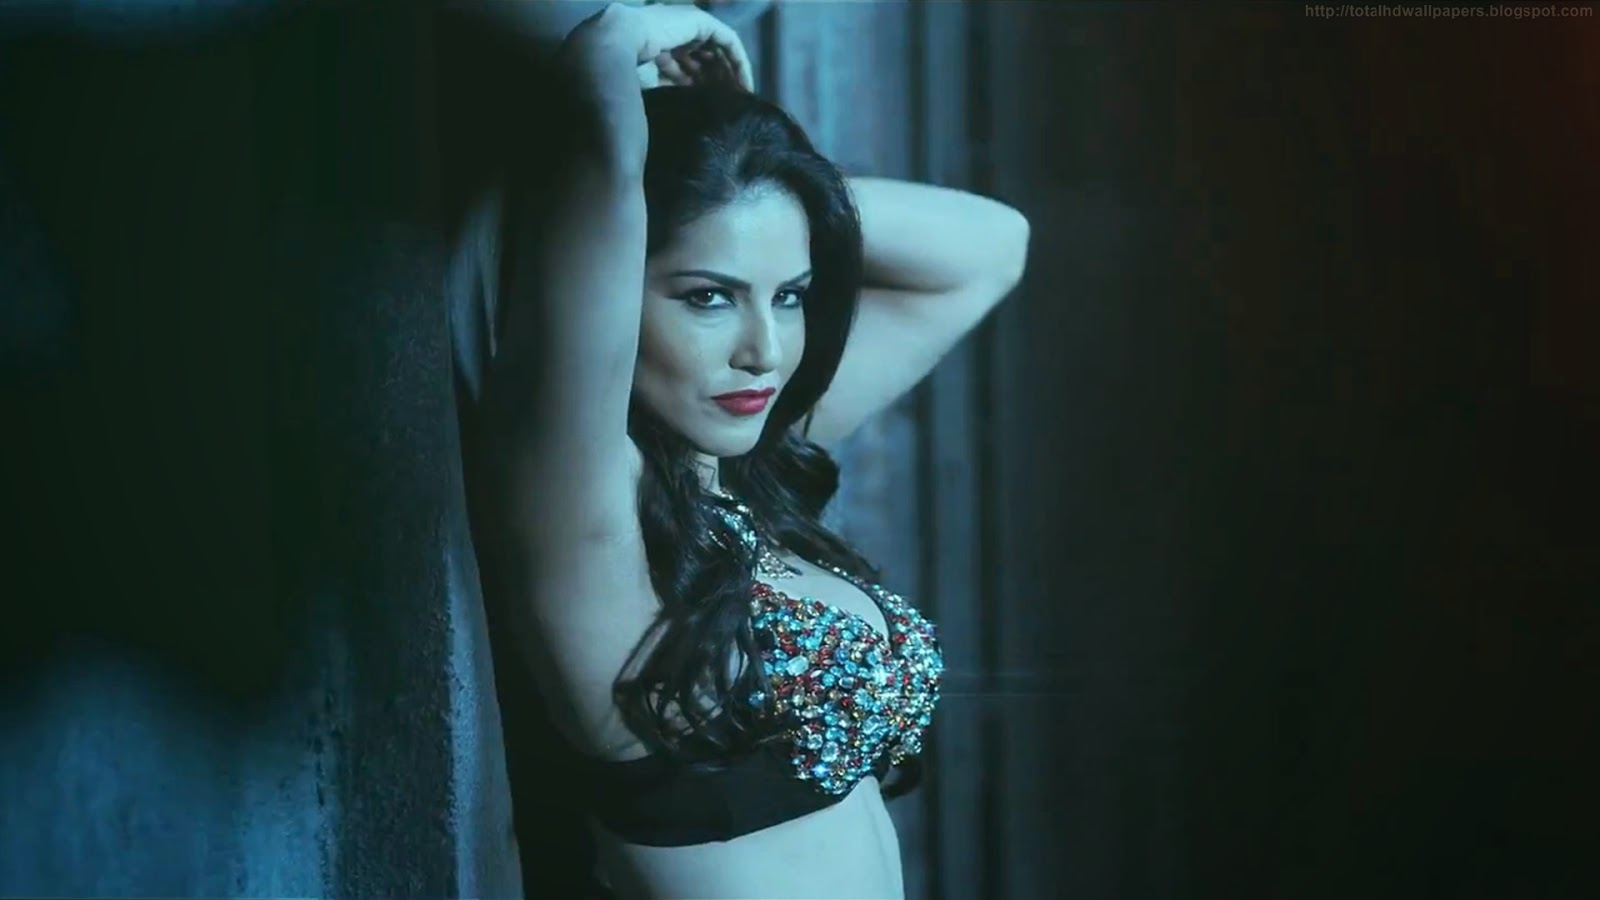 Sunny Leone Profile Hd Wallpaper Sexy Hot-6520